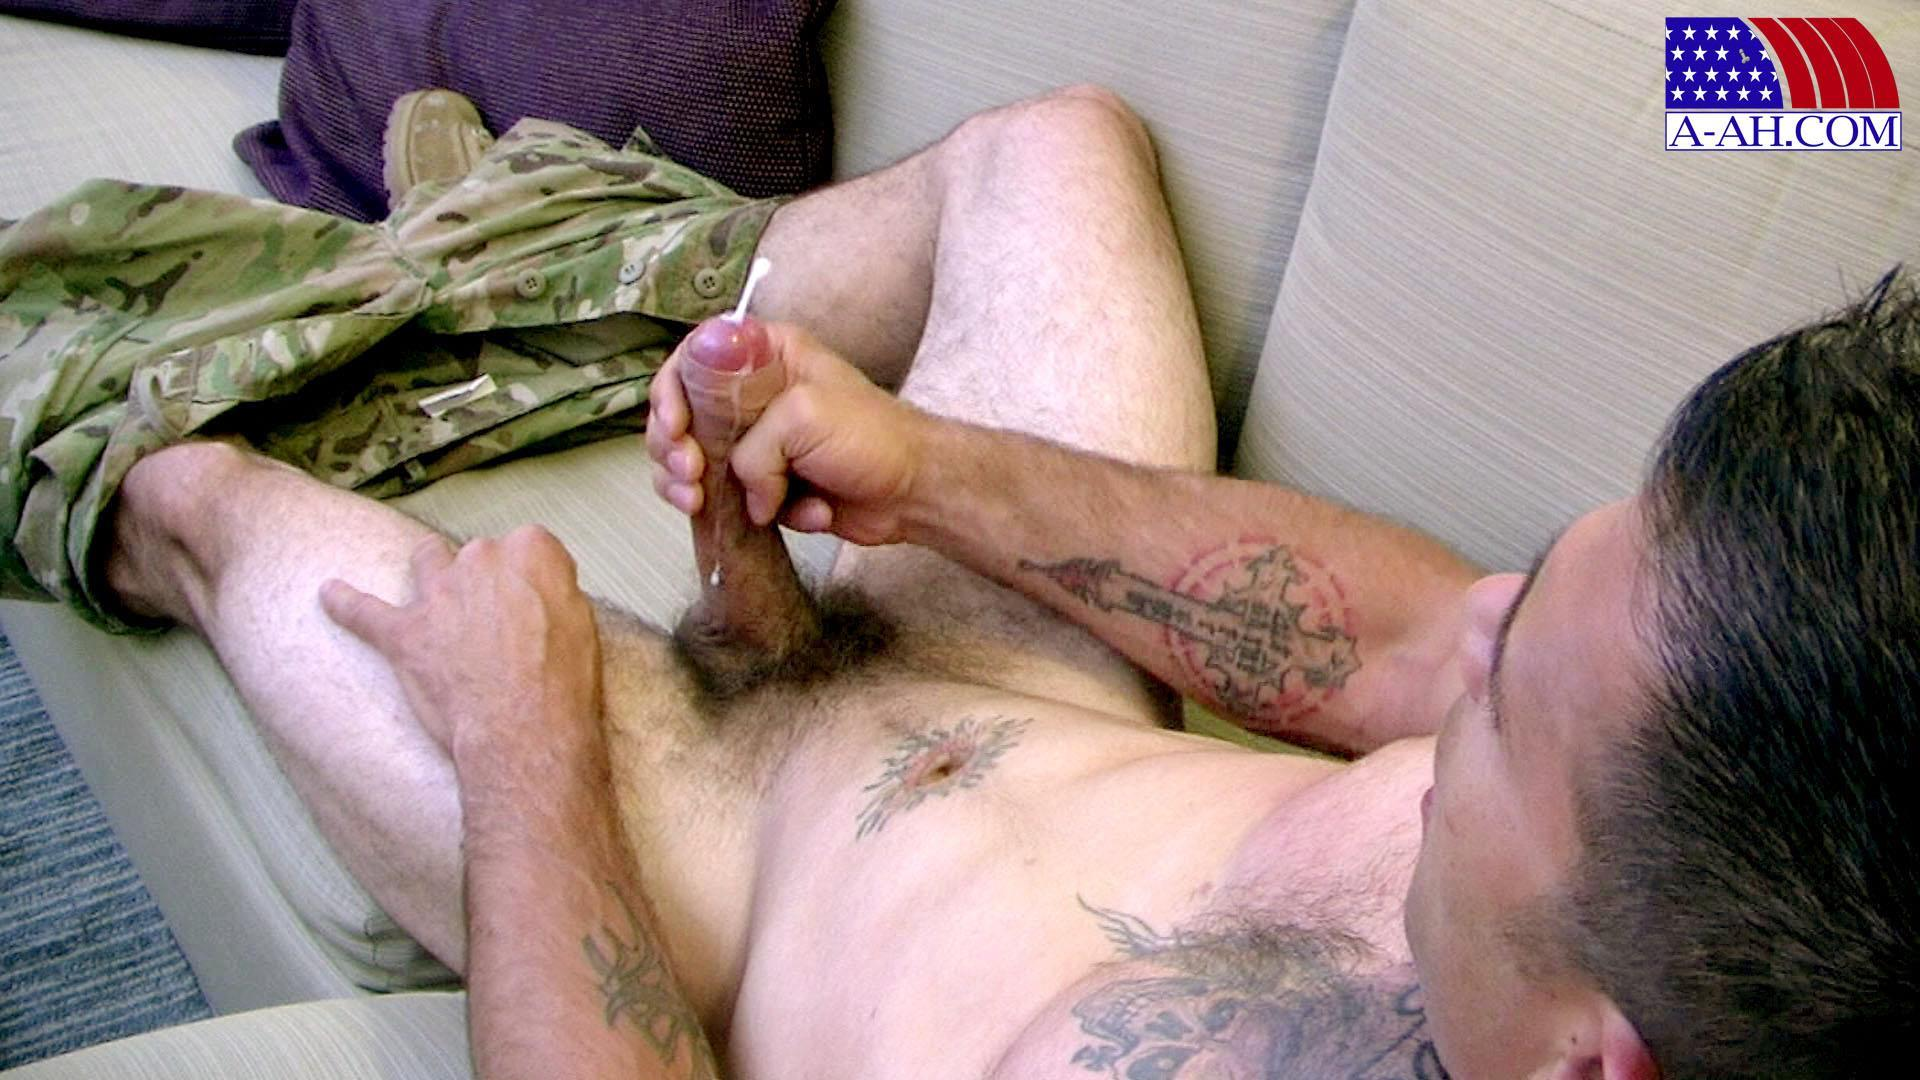 All American Heroes JB US Amry Soldier Jerking His Big Uncut Cock Amateur Gay Porn 15 Amateur Straight US Army Specialist Stroking His Big Uncut Cock